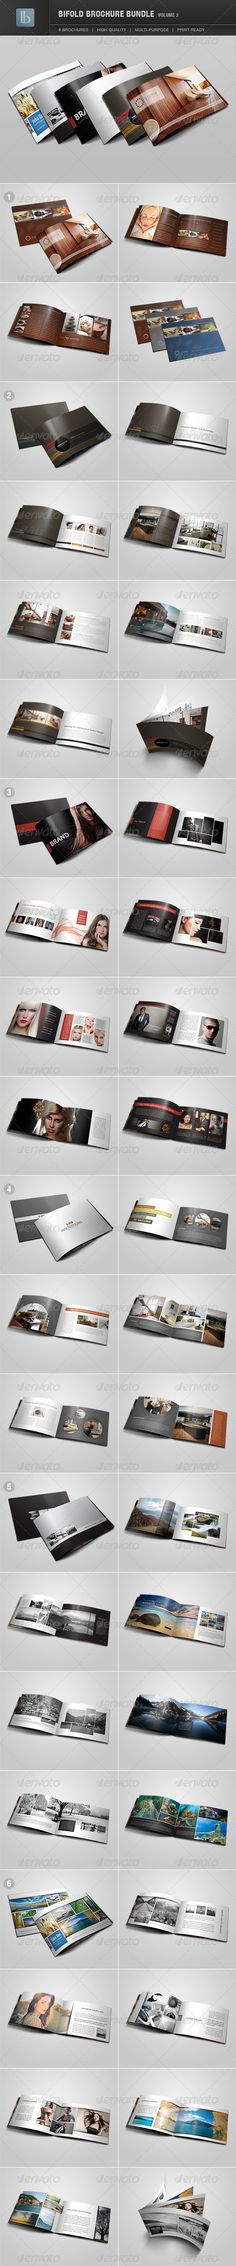 Bifold Brochure Bundle   Volume 2  #corporate #design #editorial • Available here → http://graphicriver.net/item/bifold-brochure-bundle-volume-2/2703068?s_rank=25&ref=pxcr